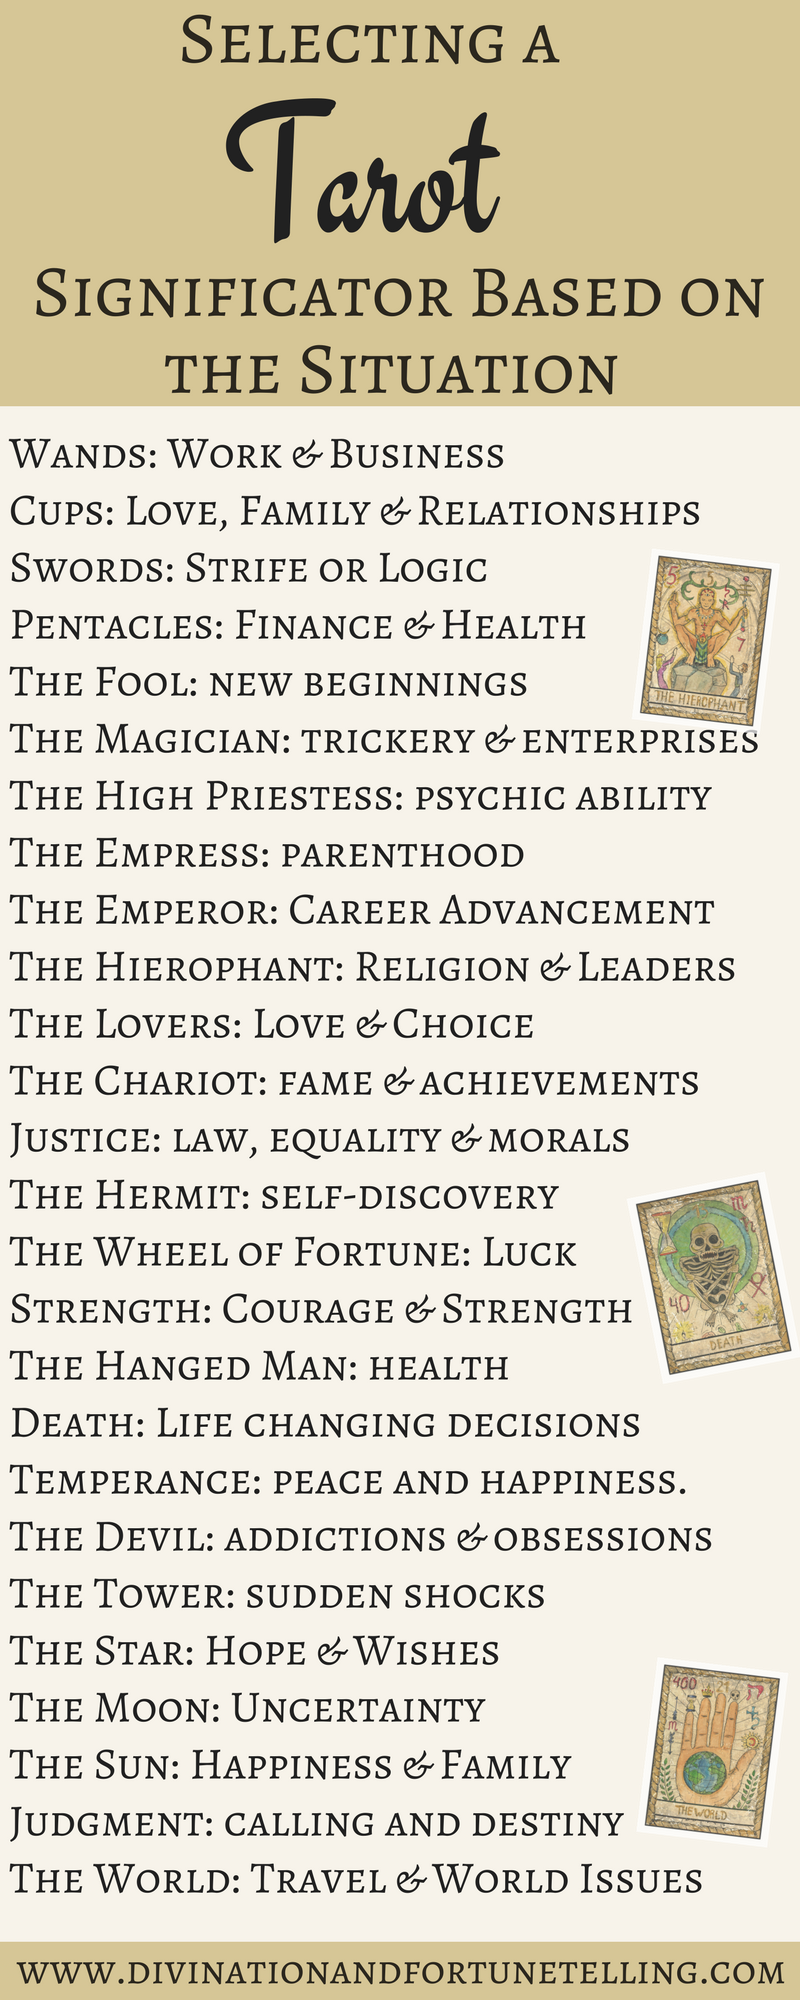 How To Select A Tarot Significator